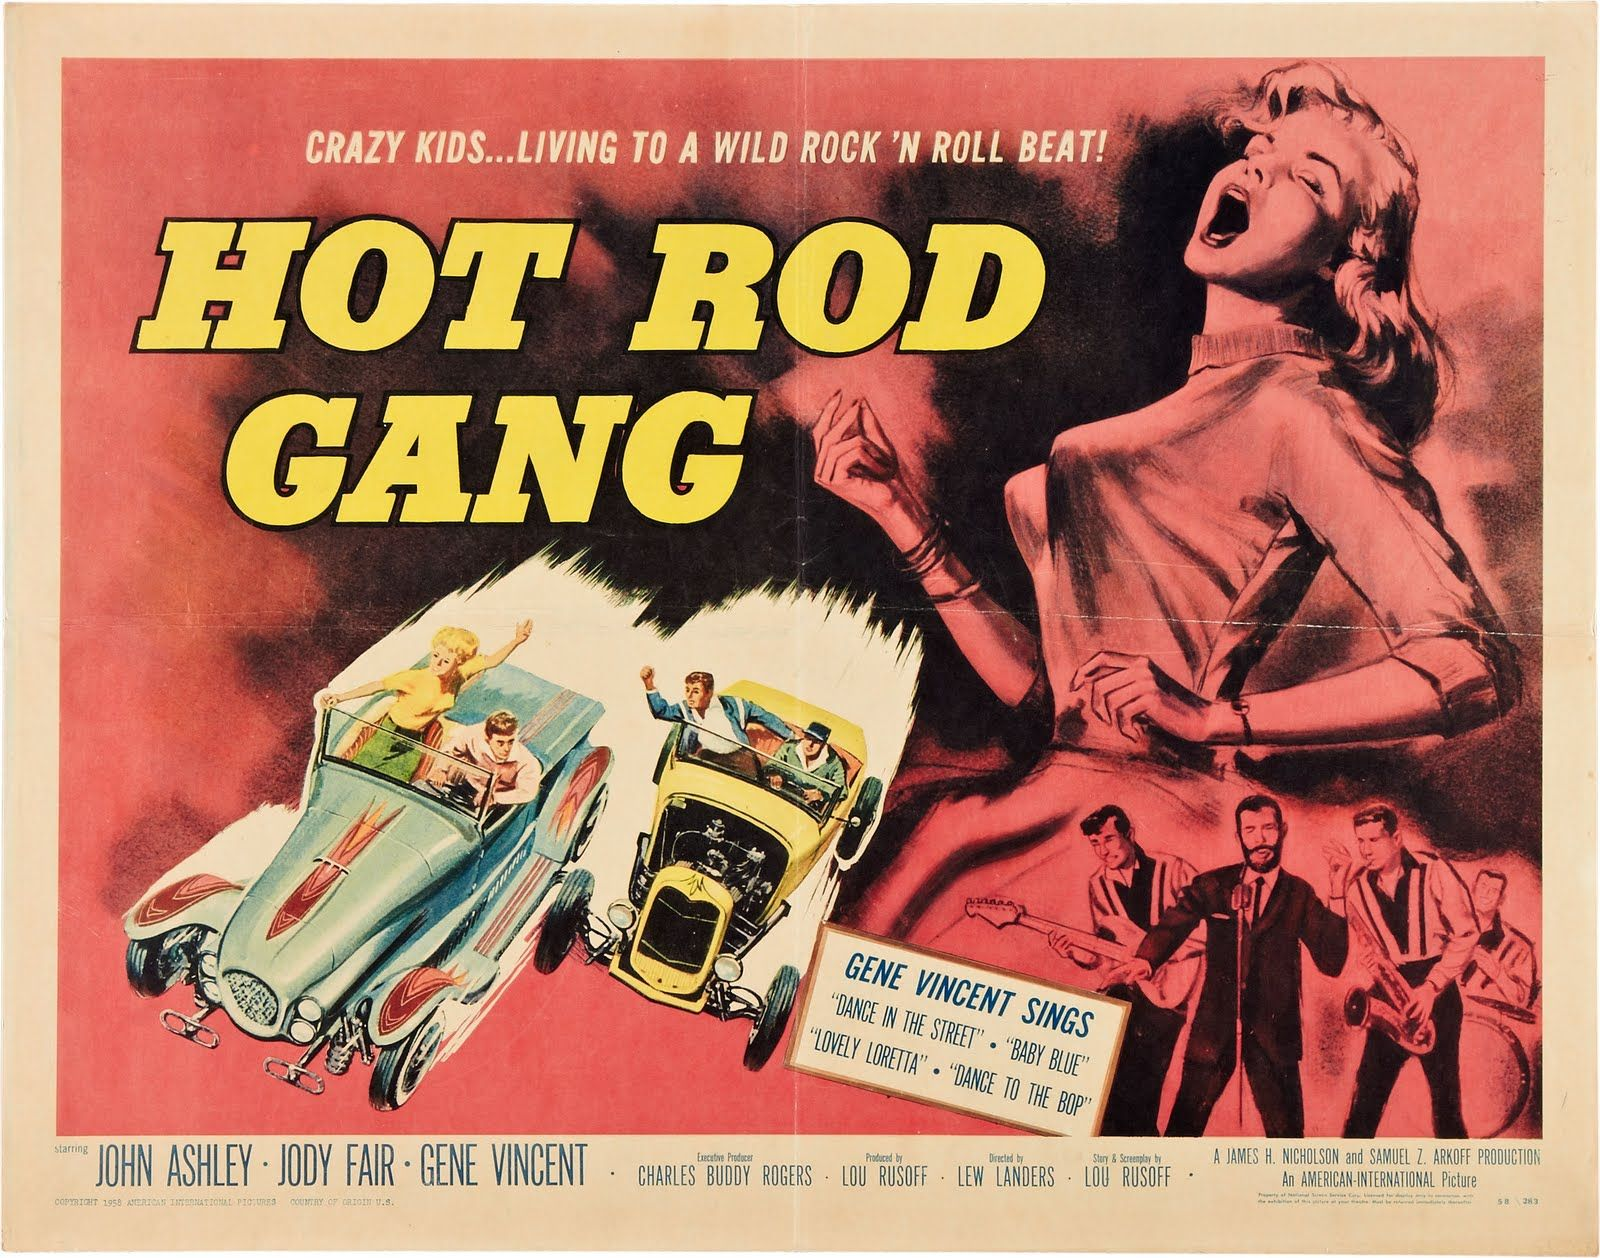 late 1950\'s surf and hot rod culture - Google Search | stuff I like ...